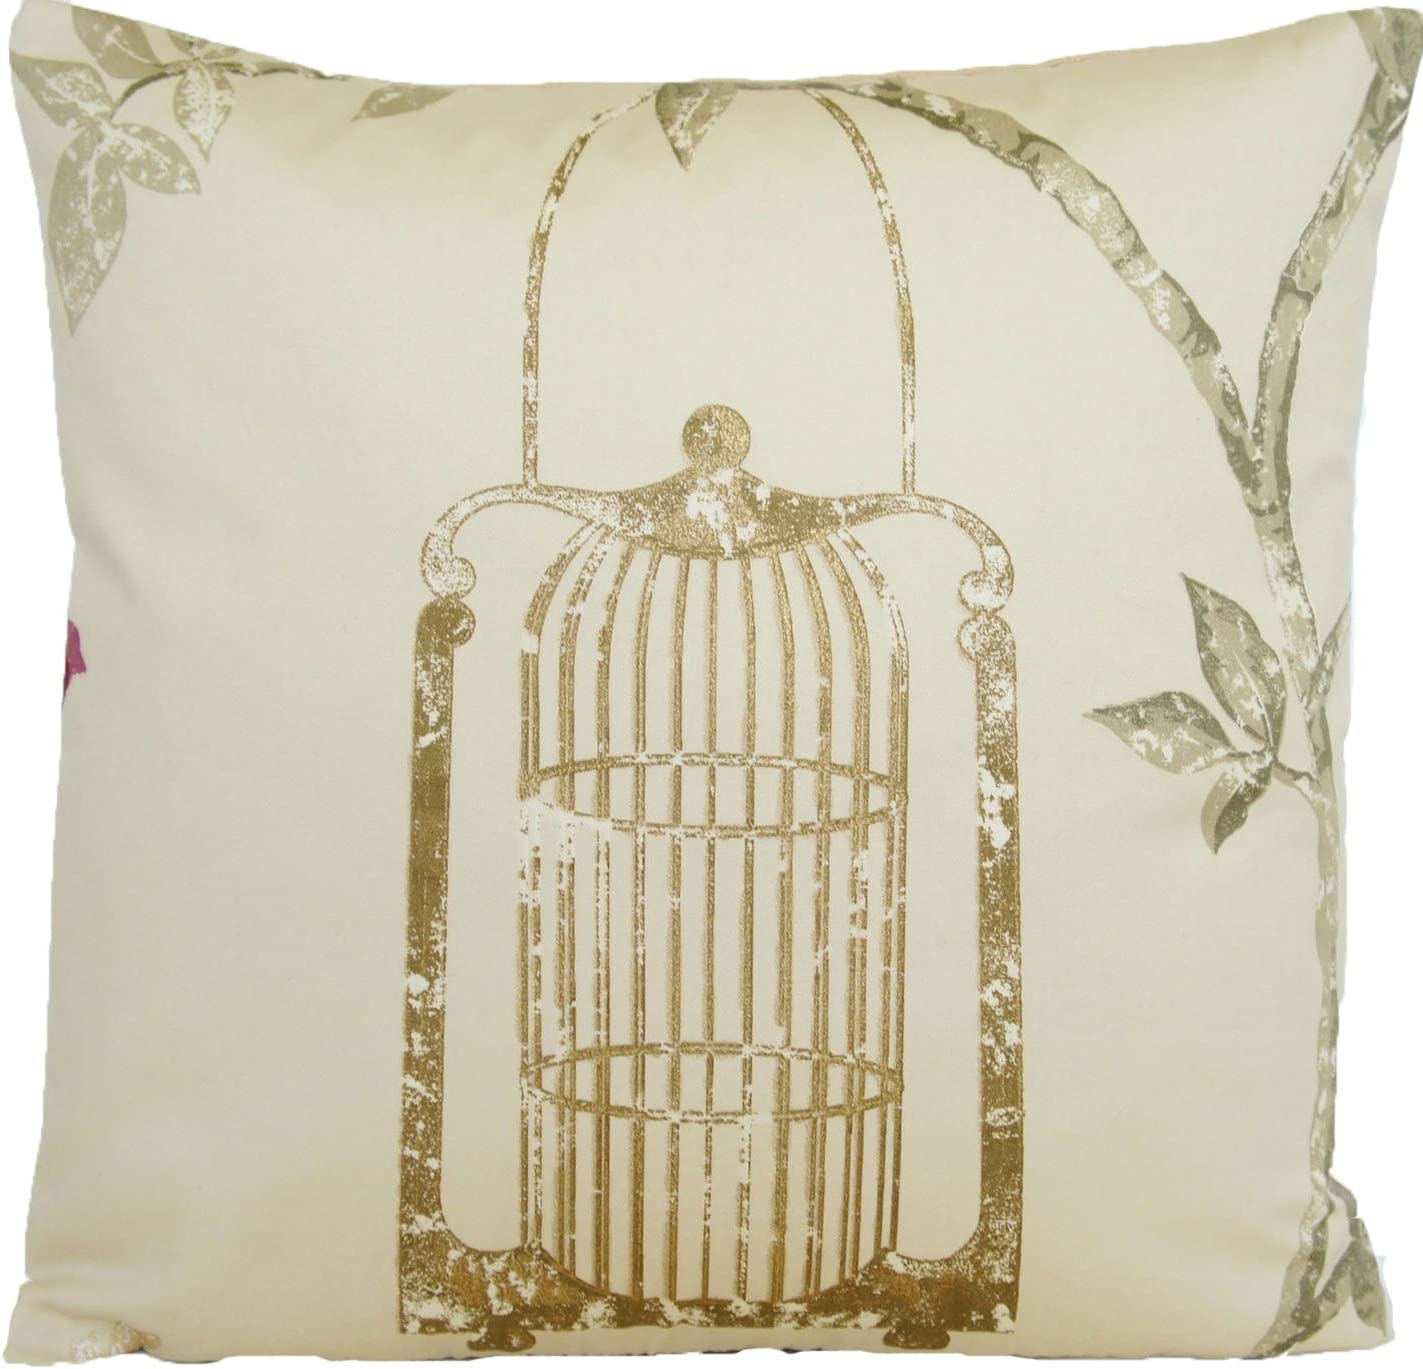 Nina Campbell Gold Bird Cage Pillow Throw Case Modern Style Cushion Cover Fabric Maroon